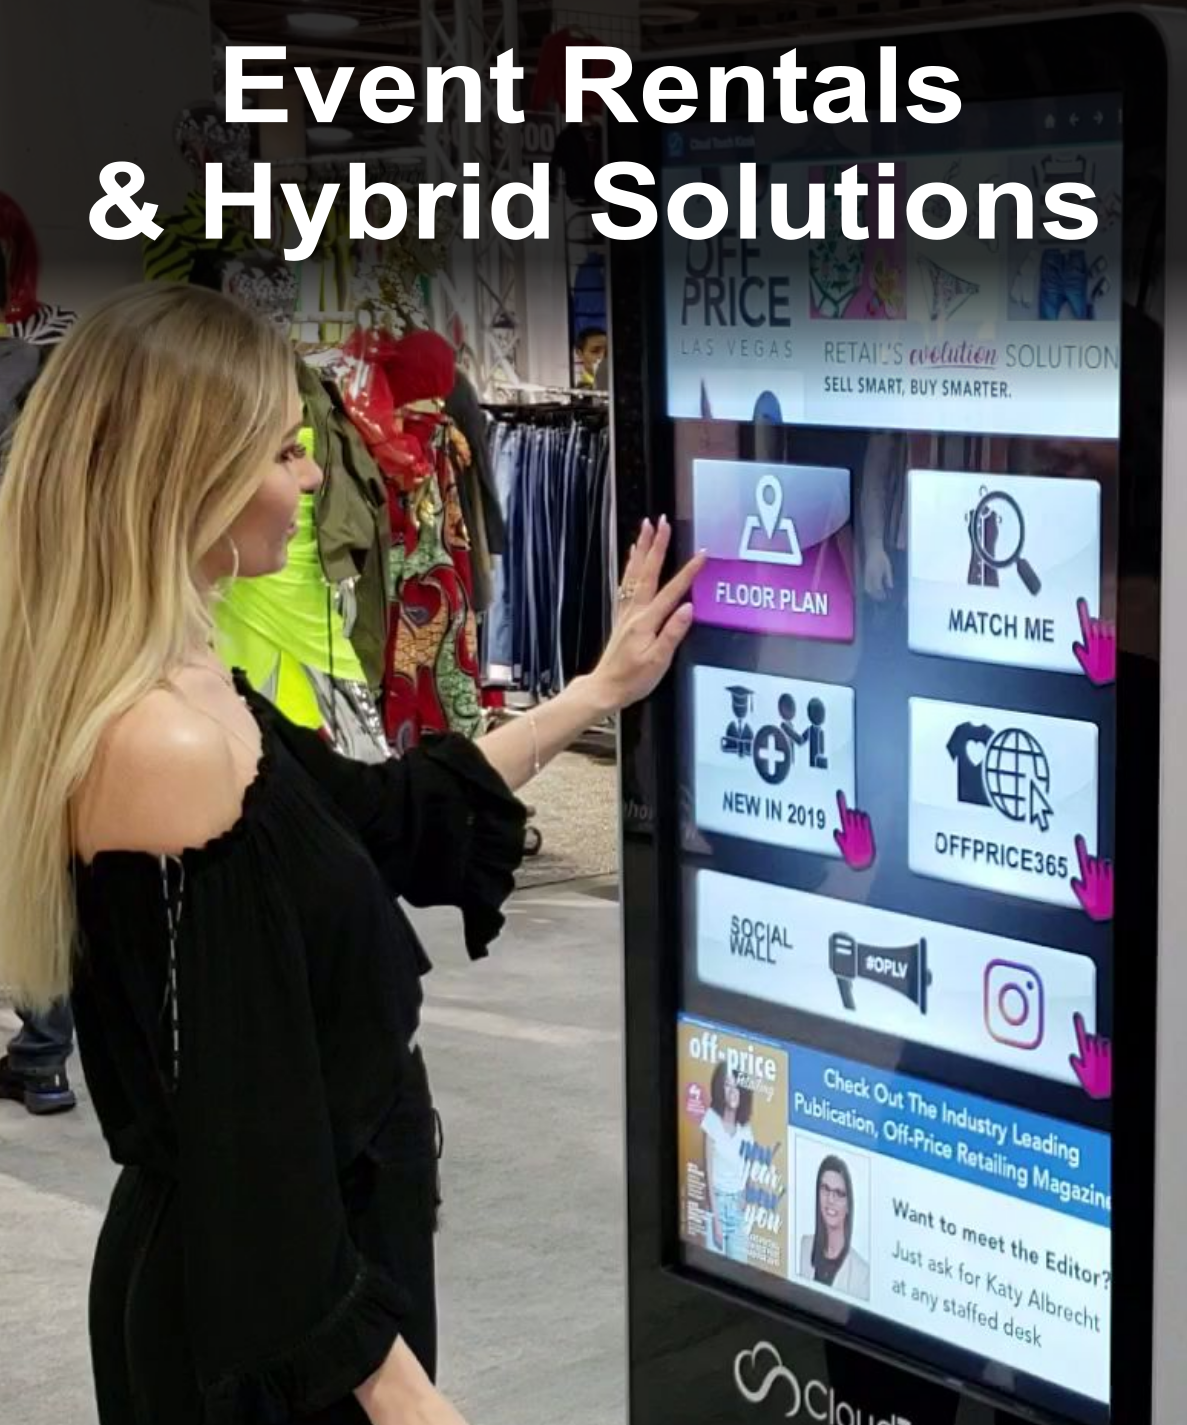 Event-Rentals-Hybrid-Event-Solutions-Cloud-Touch-Covid-Safety-No-logo